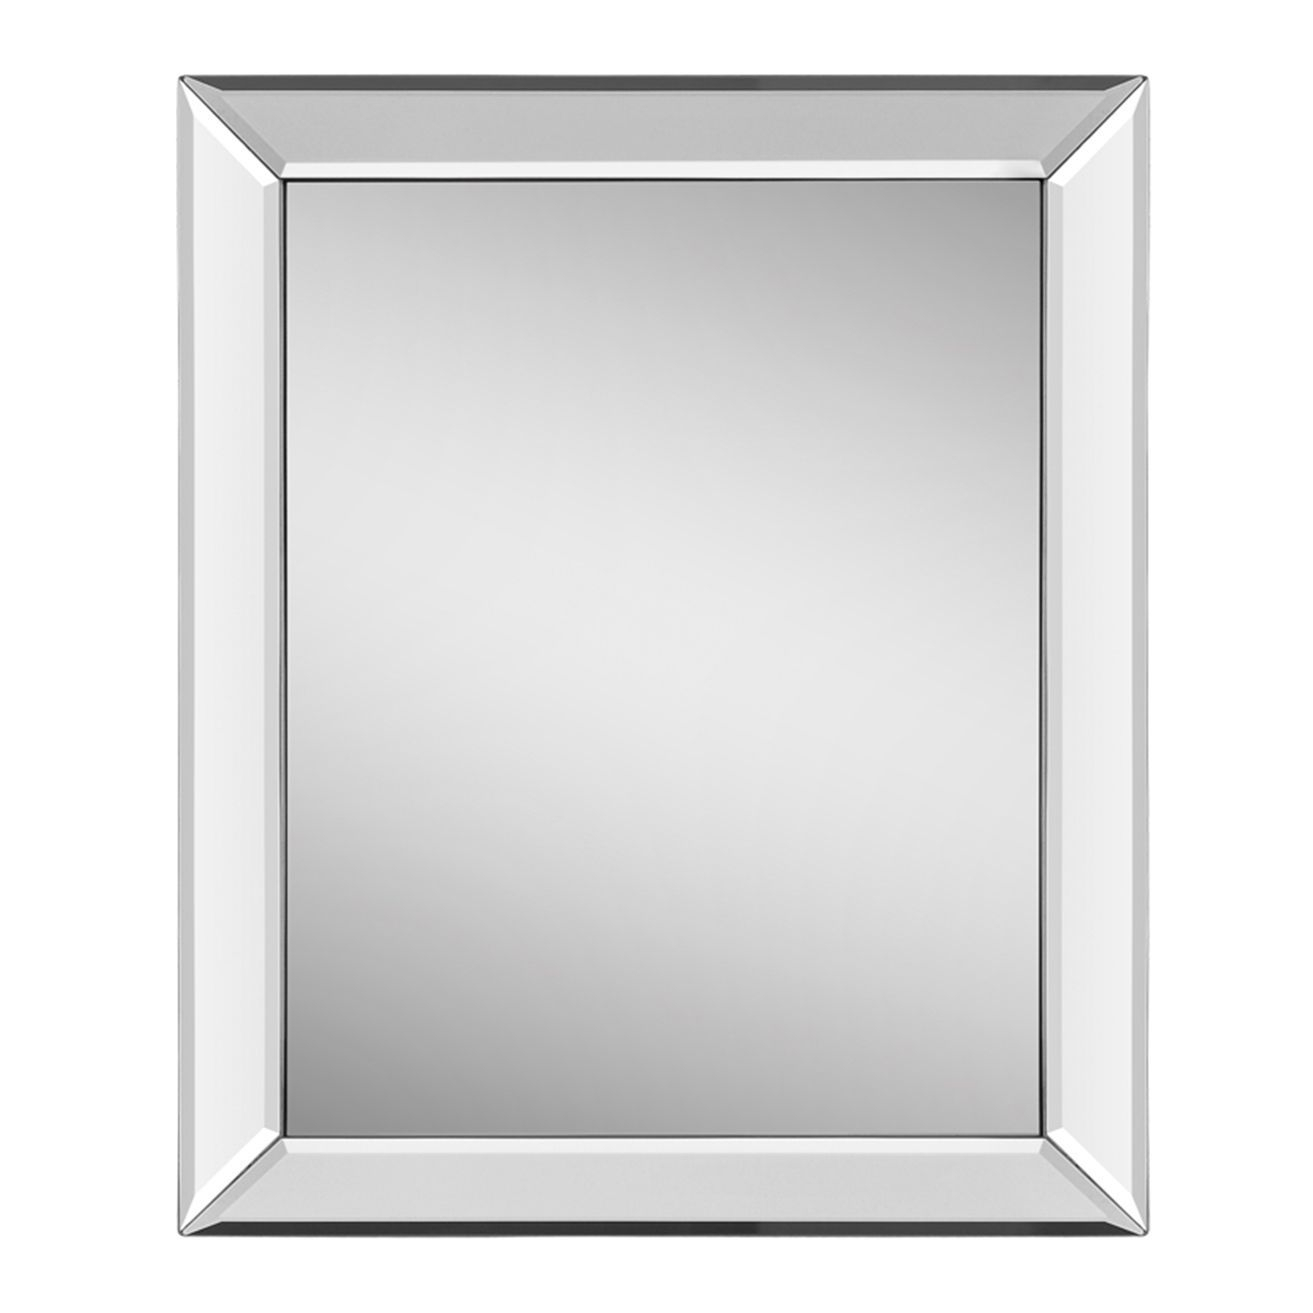 This Simple And Elegant Mirror Features A Polished Mirror In Tetbury Frameless Tri Bevel Wall Mirrors (Image 14 of 20)